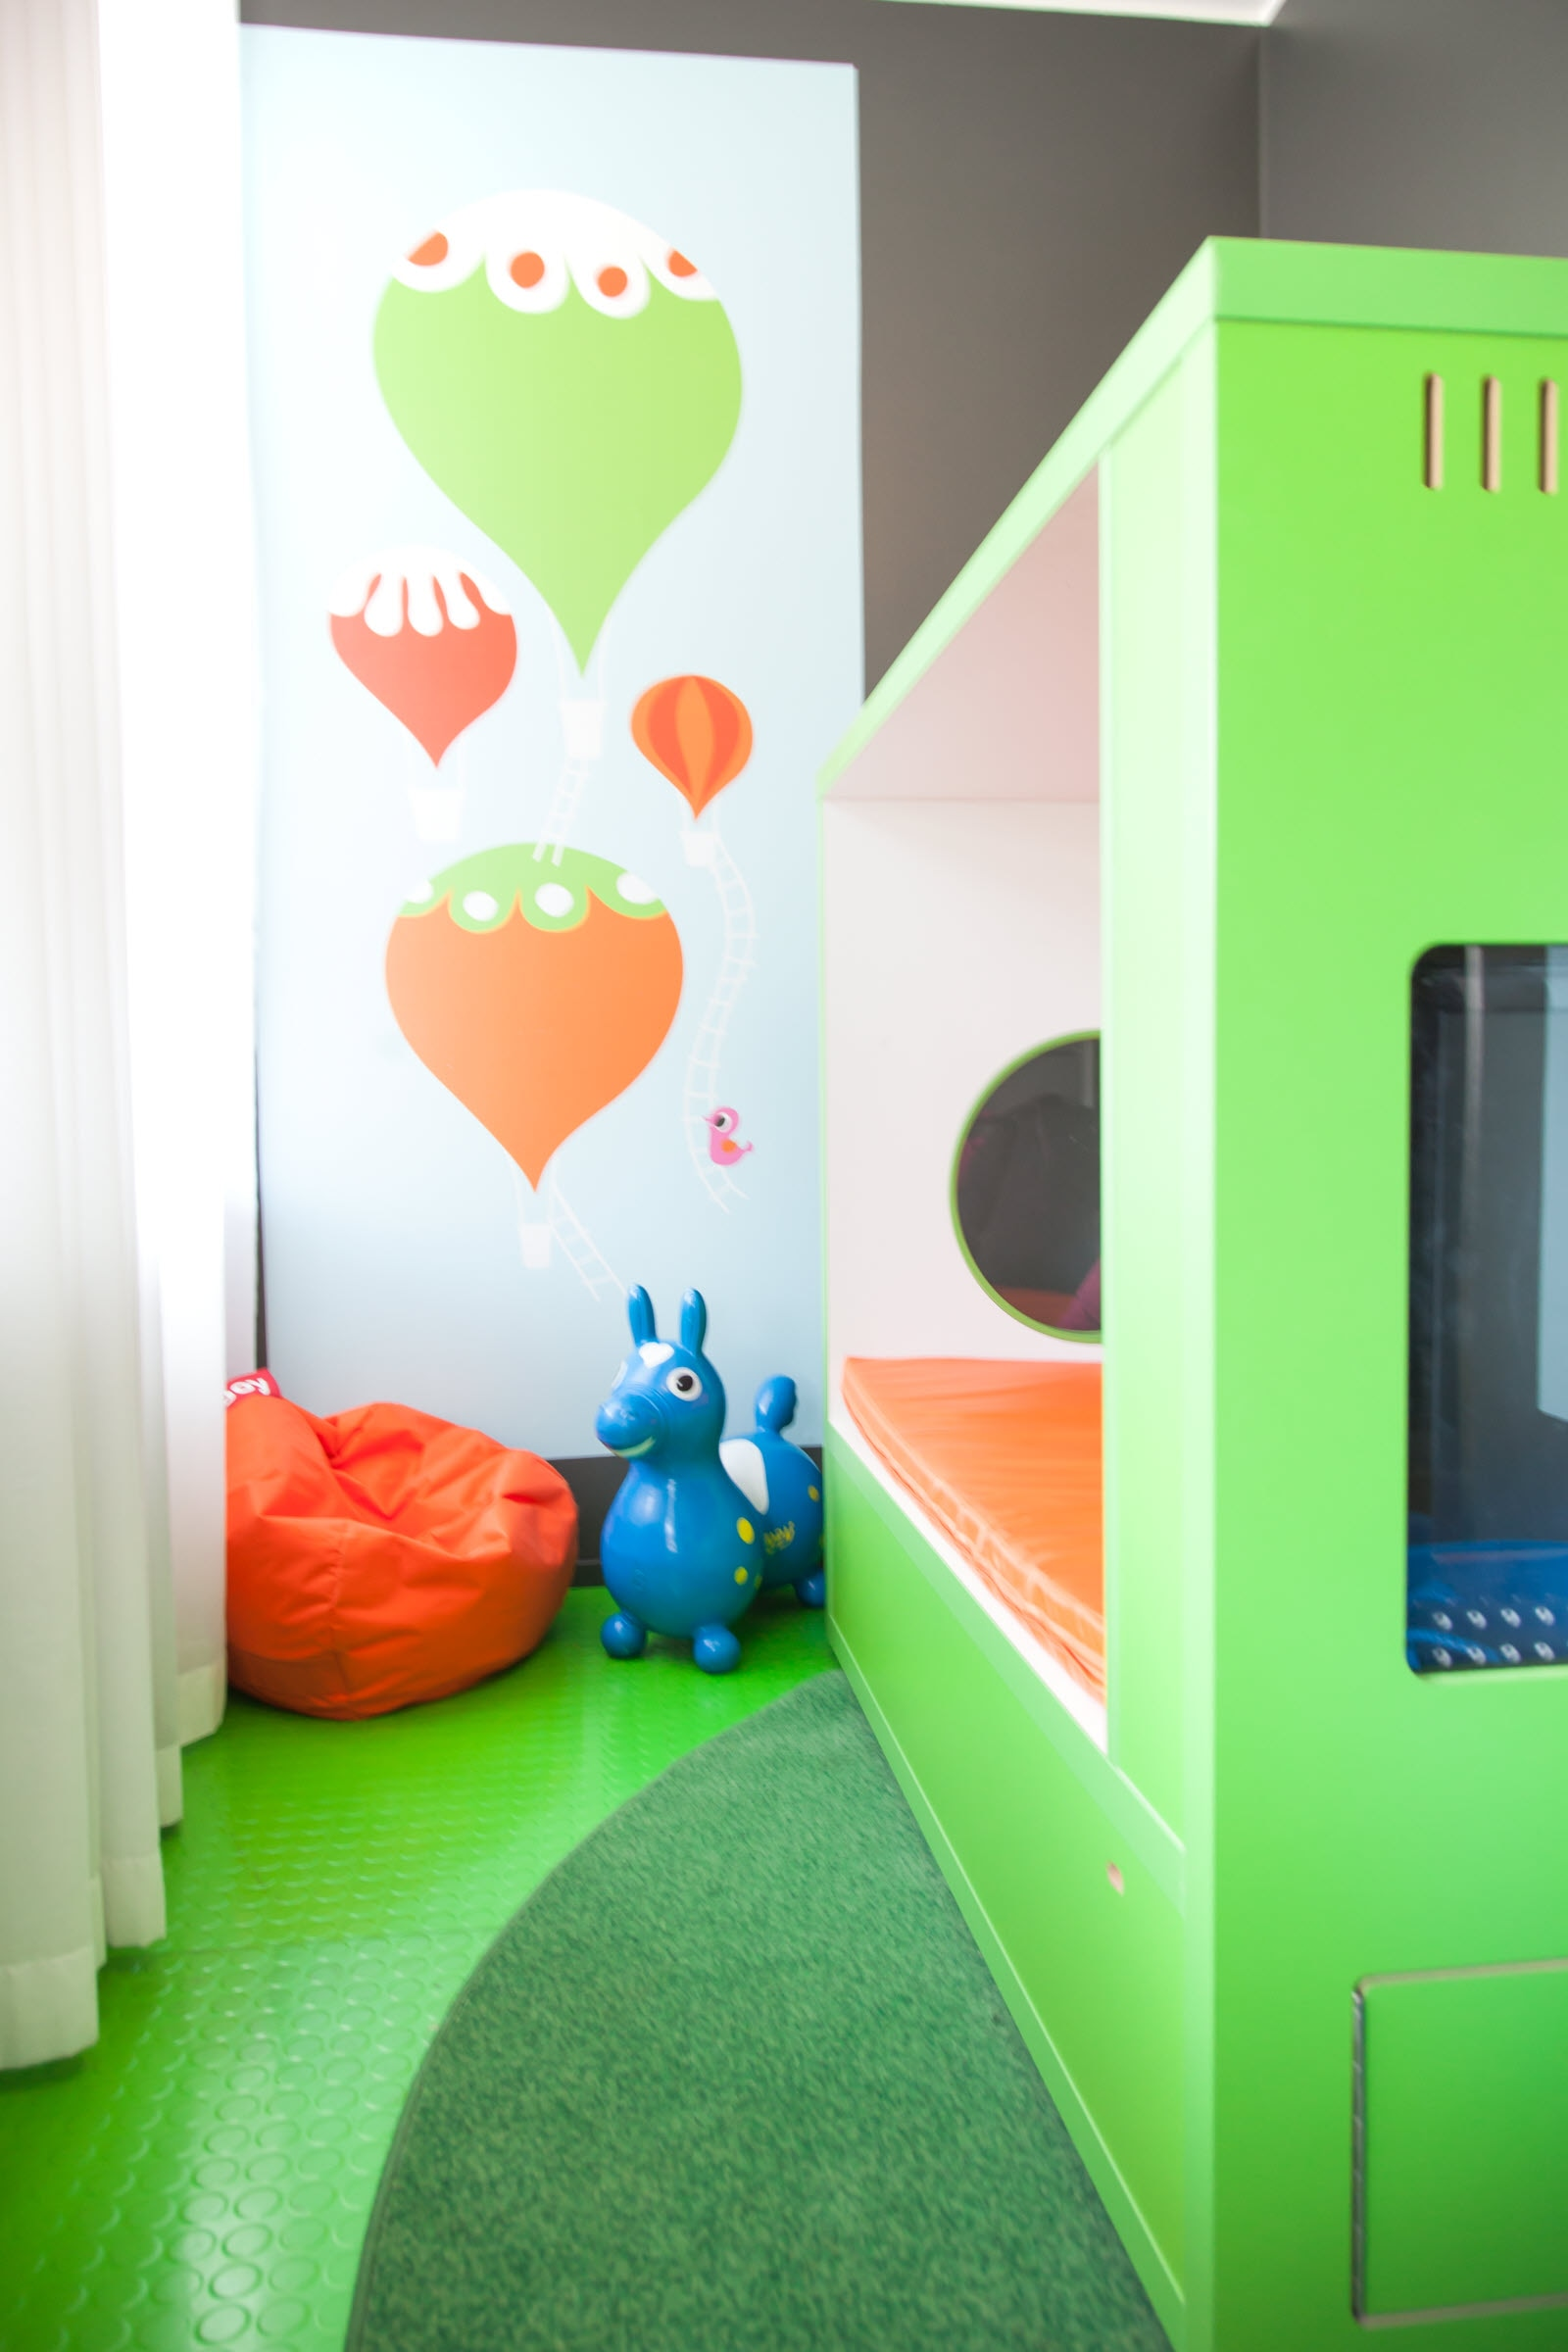 Scandic Tempere Station, play room